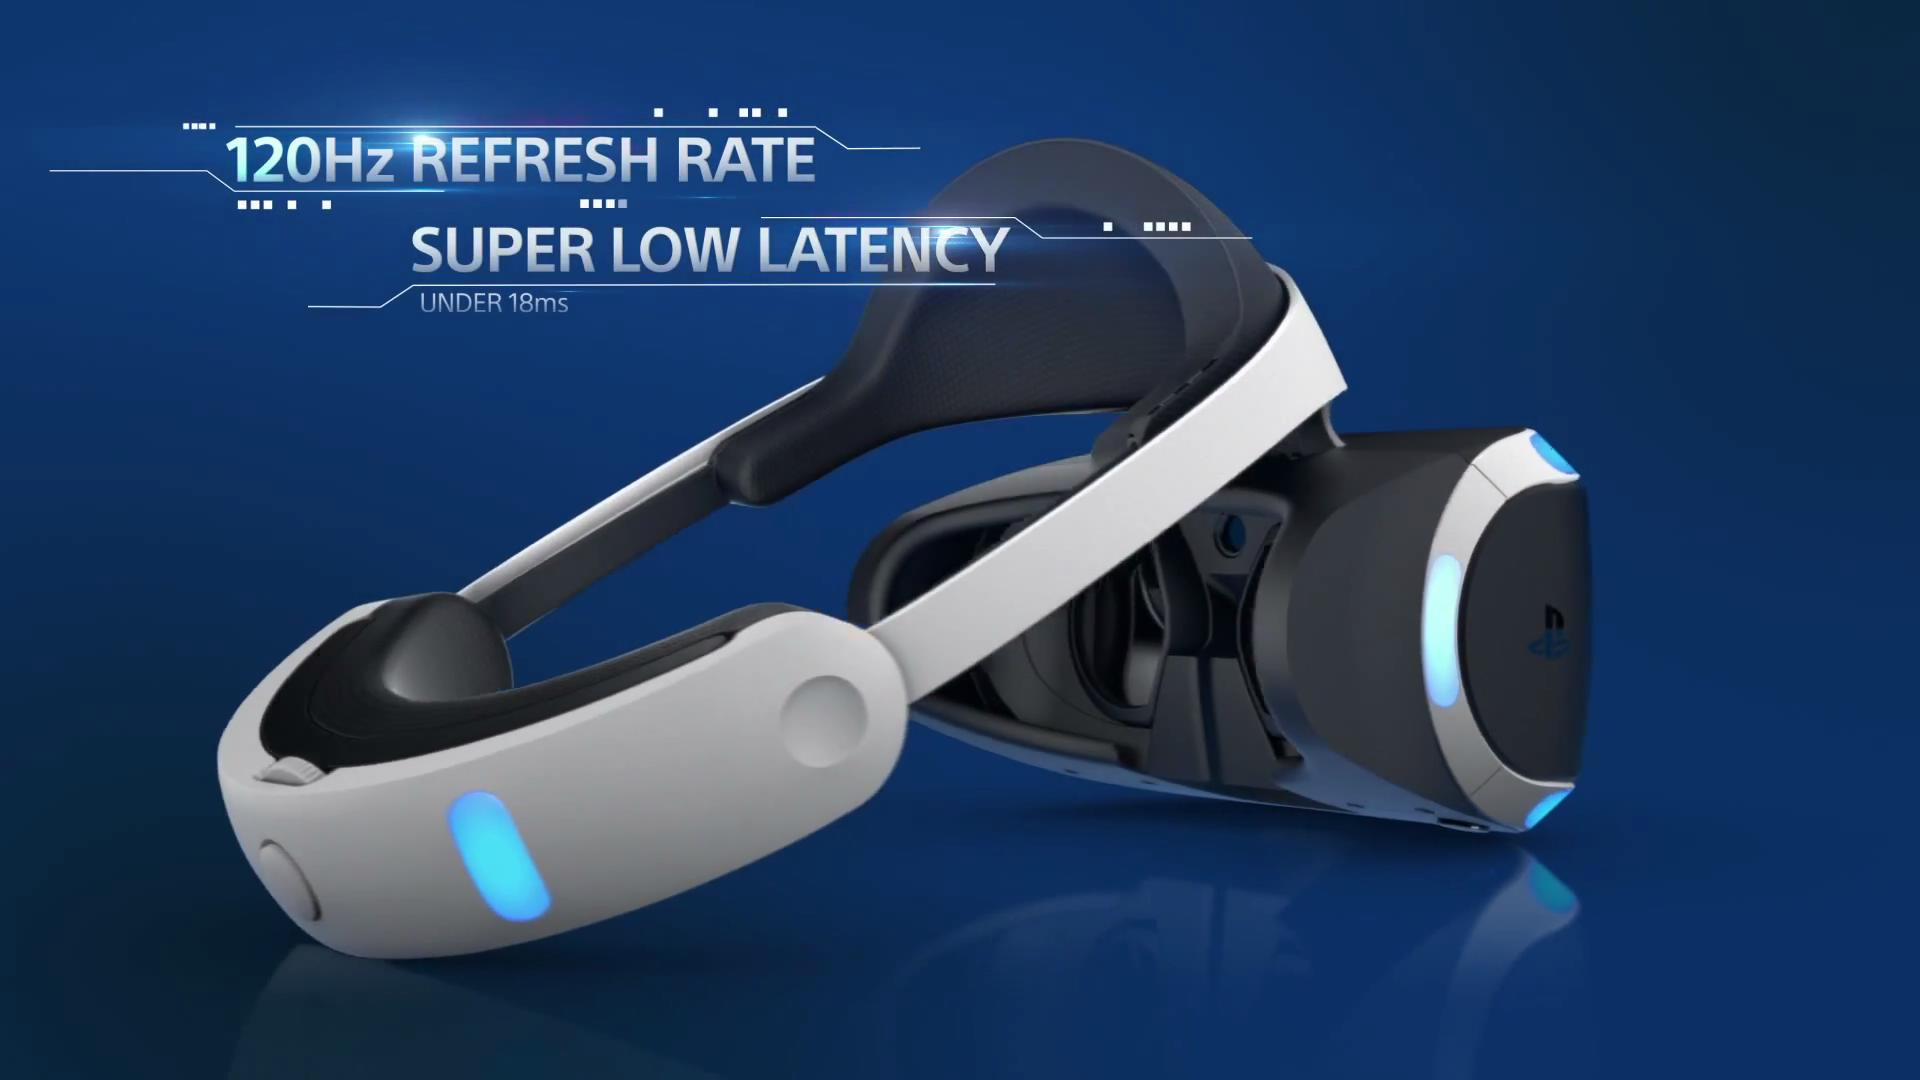 Nintnedo Fall Wallpapers Playstation Vr To Release This Fall According To Gamestop Ceo